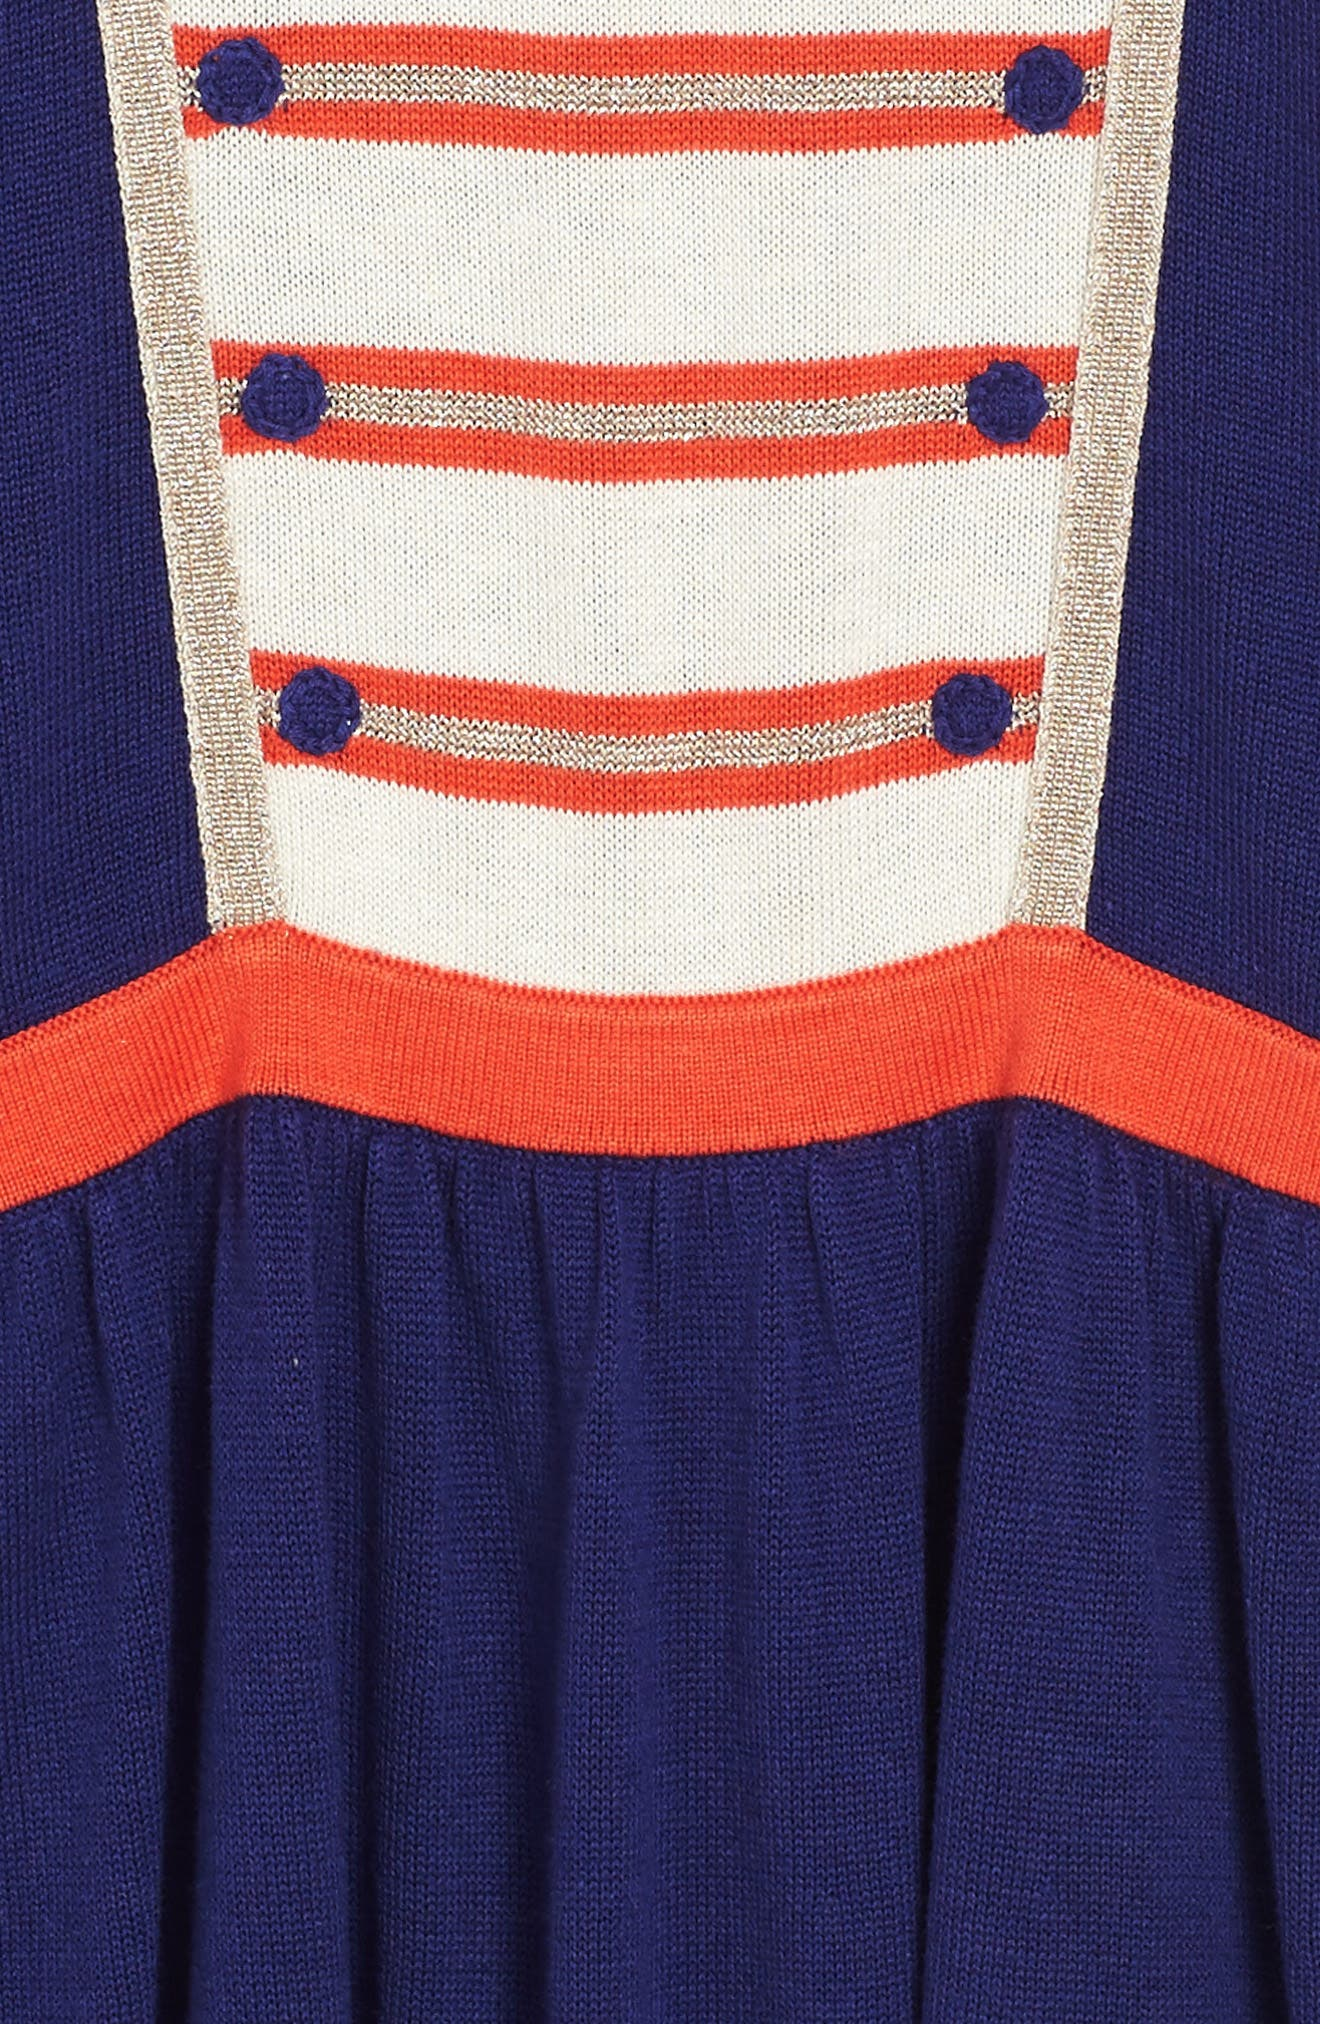 Sparkly Intarsia Knit Dress,                             Alternate thumbnail 3, color,                             Dark Blue